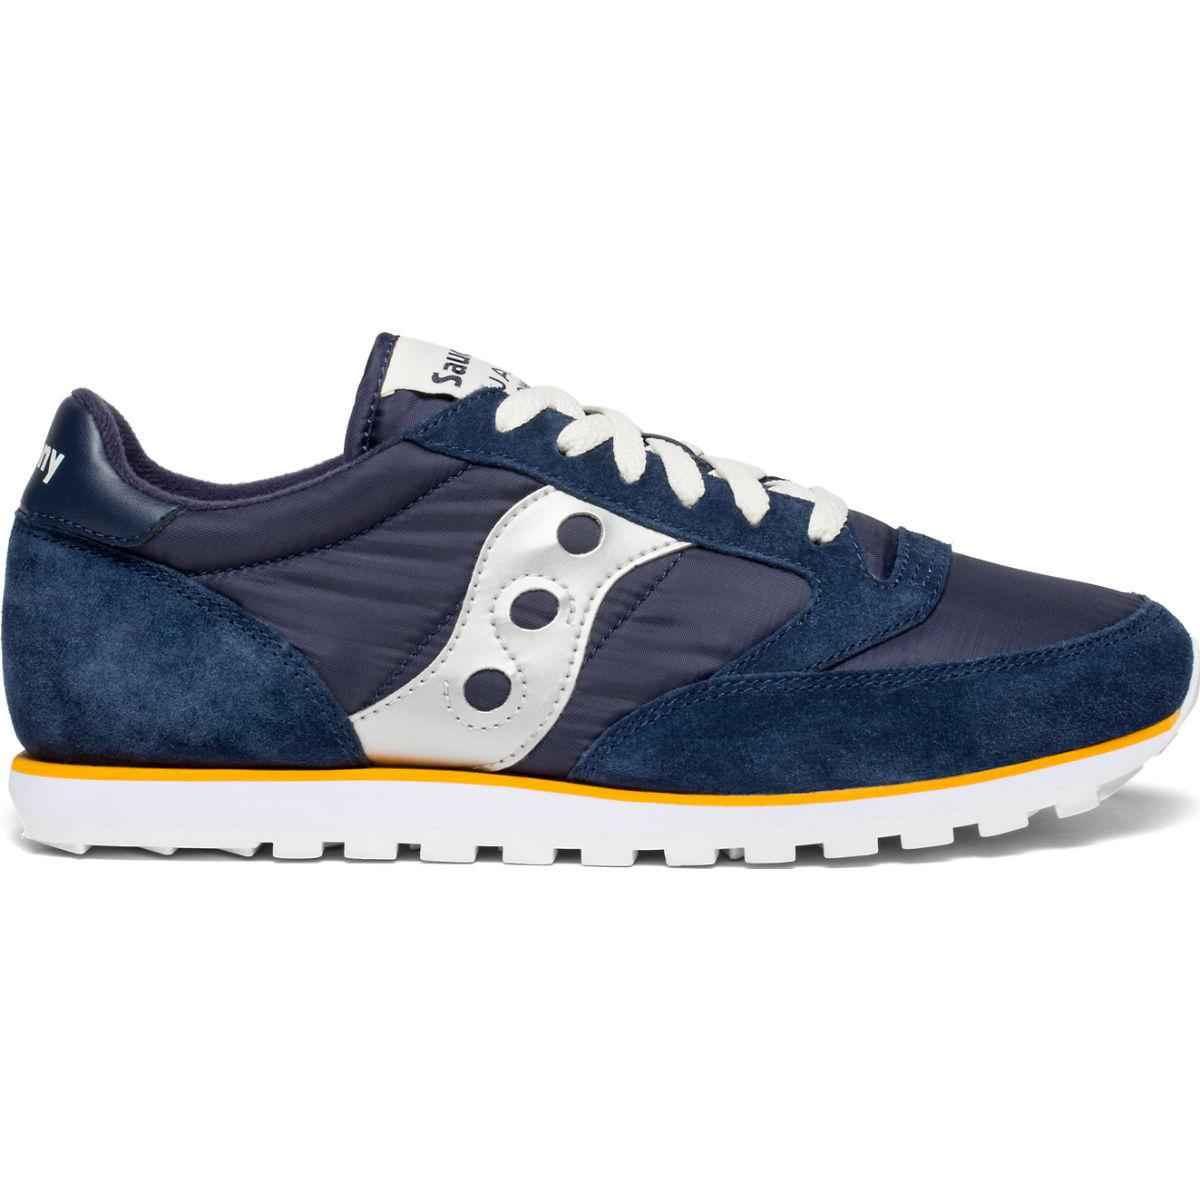 71f89c9e26 Lyst - Saucony Jazz Low Pro in Blue for Men